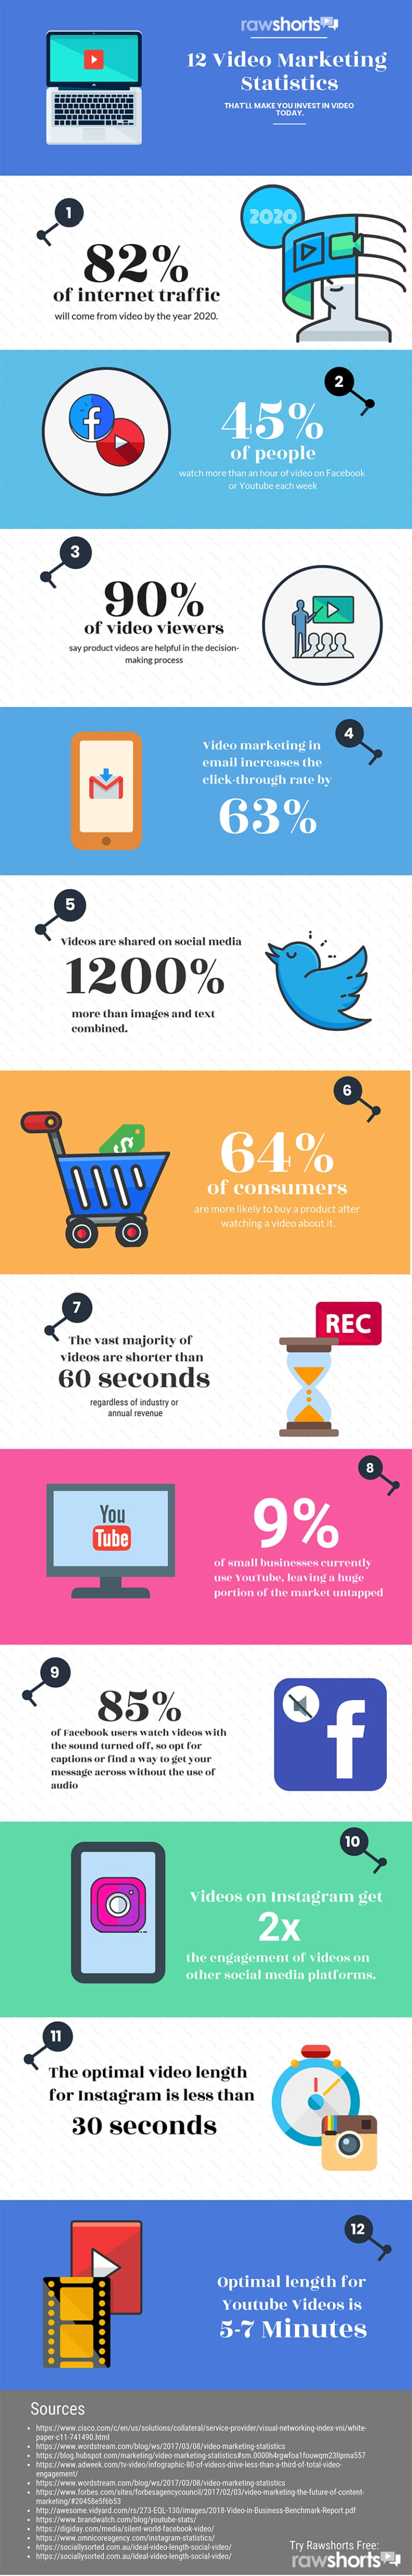 12 Video Statistics to Guide Your 2020 Online Marketing Strategy [Infographic] | Social Media Today